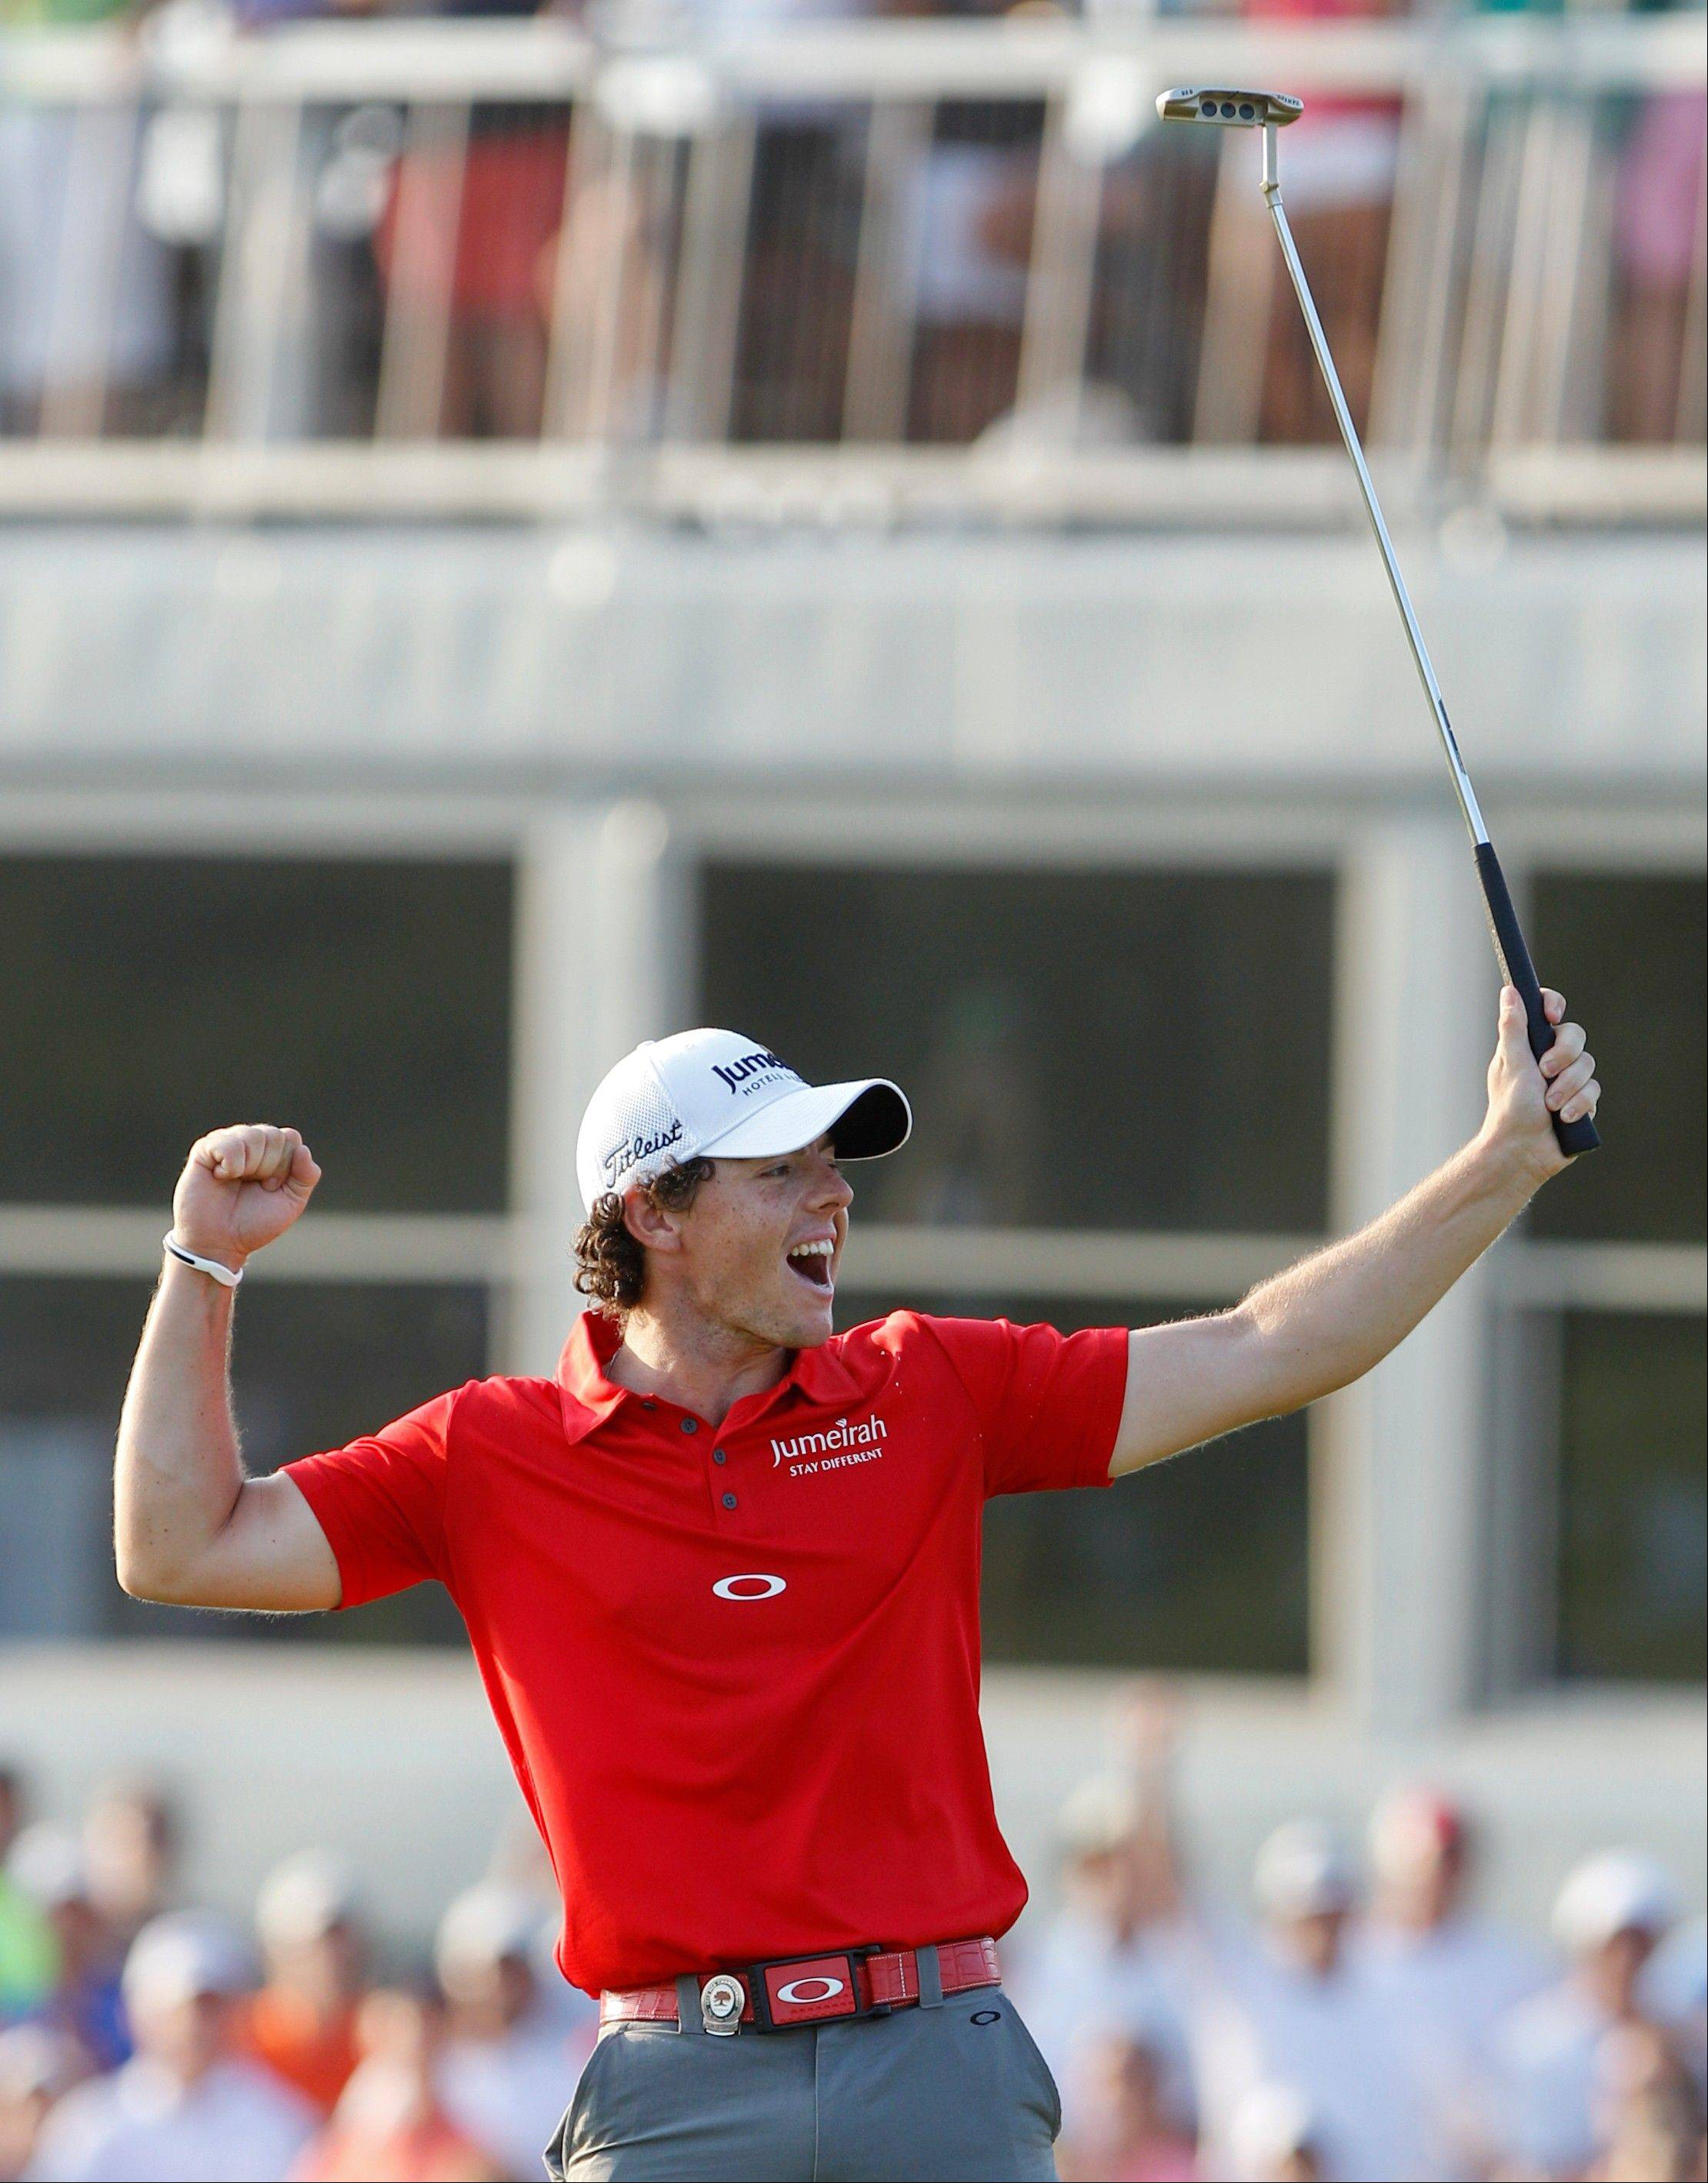 Nike said Monday that it signed a sponsorship deal with No. 1-ranked McIlroy for a reported $200 million.